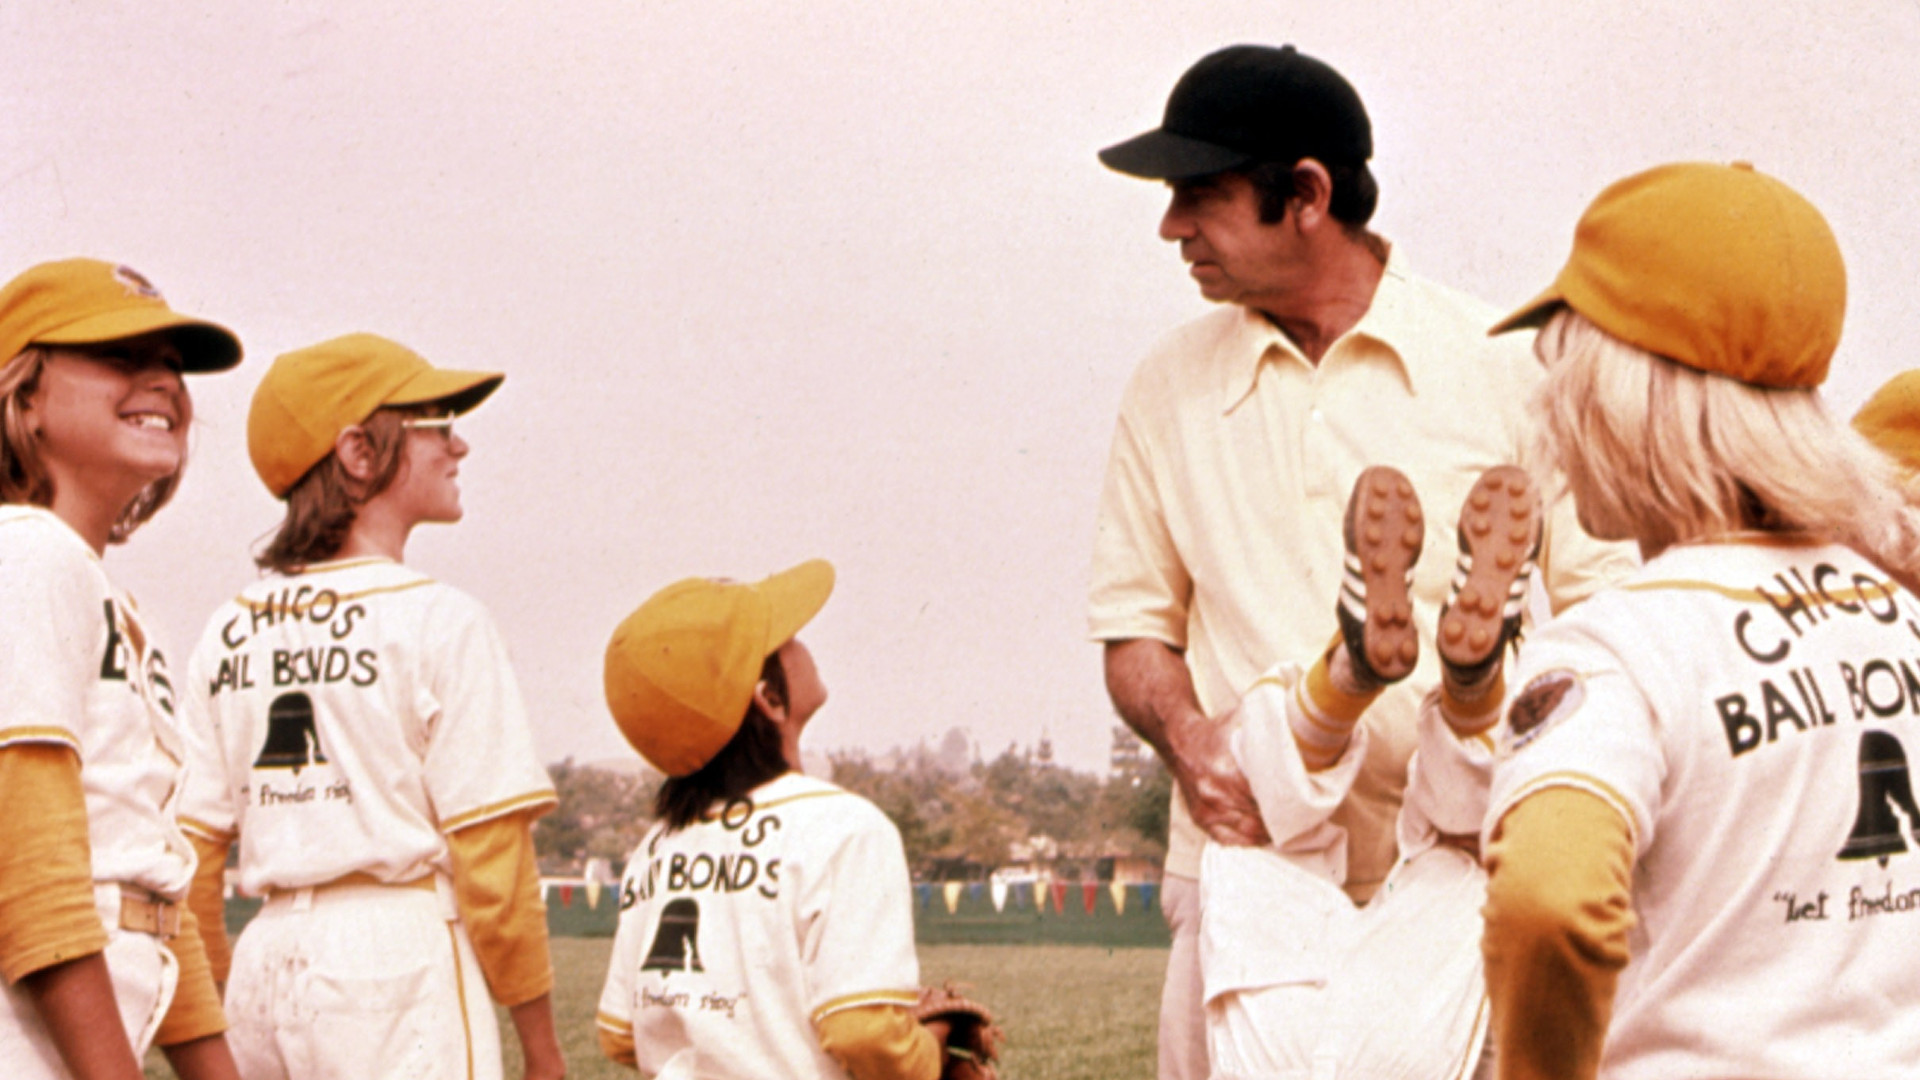 457b45db5 The Best Bad Coaches From Sports Movie. Catch the Bad News Bears ...